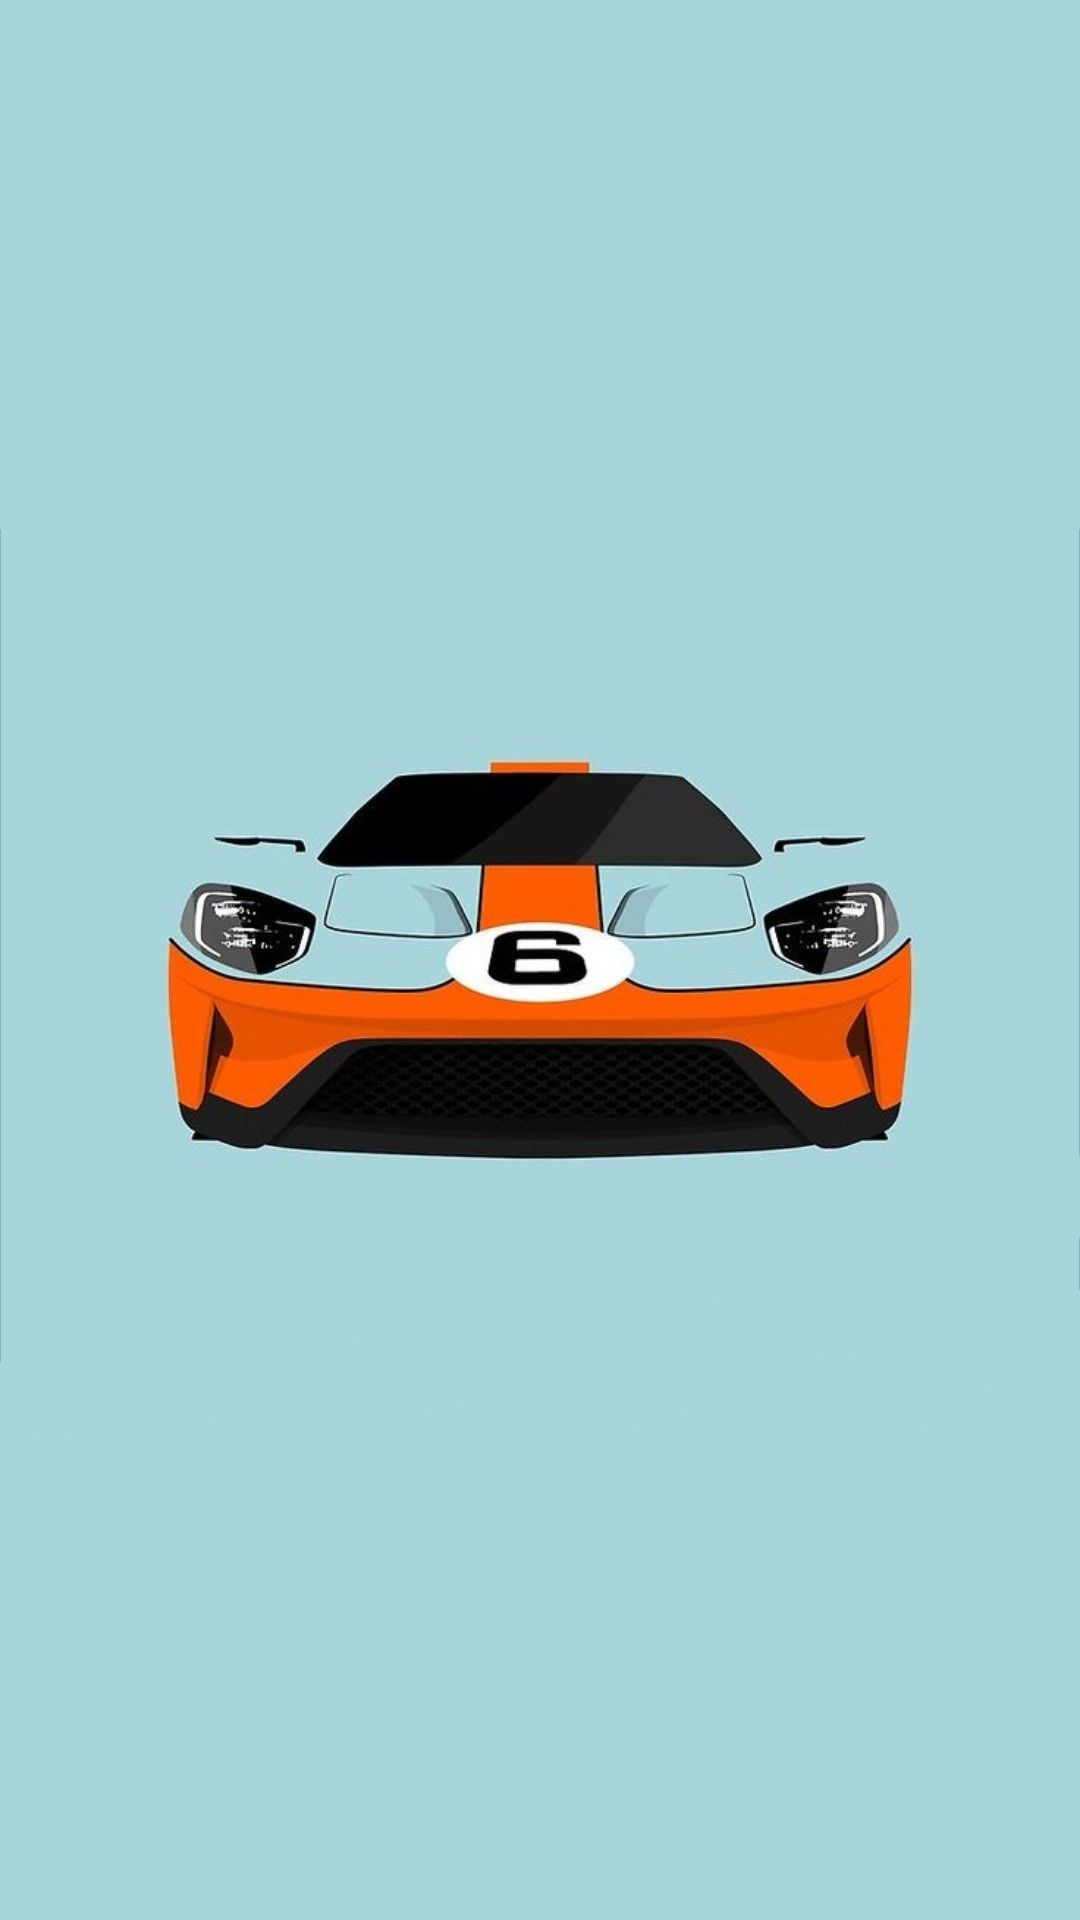 Ford Gt Automotive Art Car Illustration Car Wallpapers